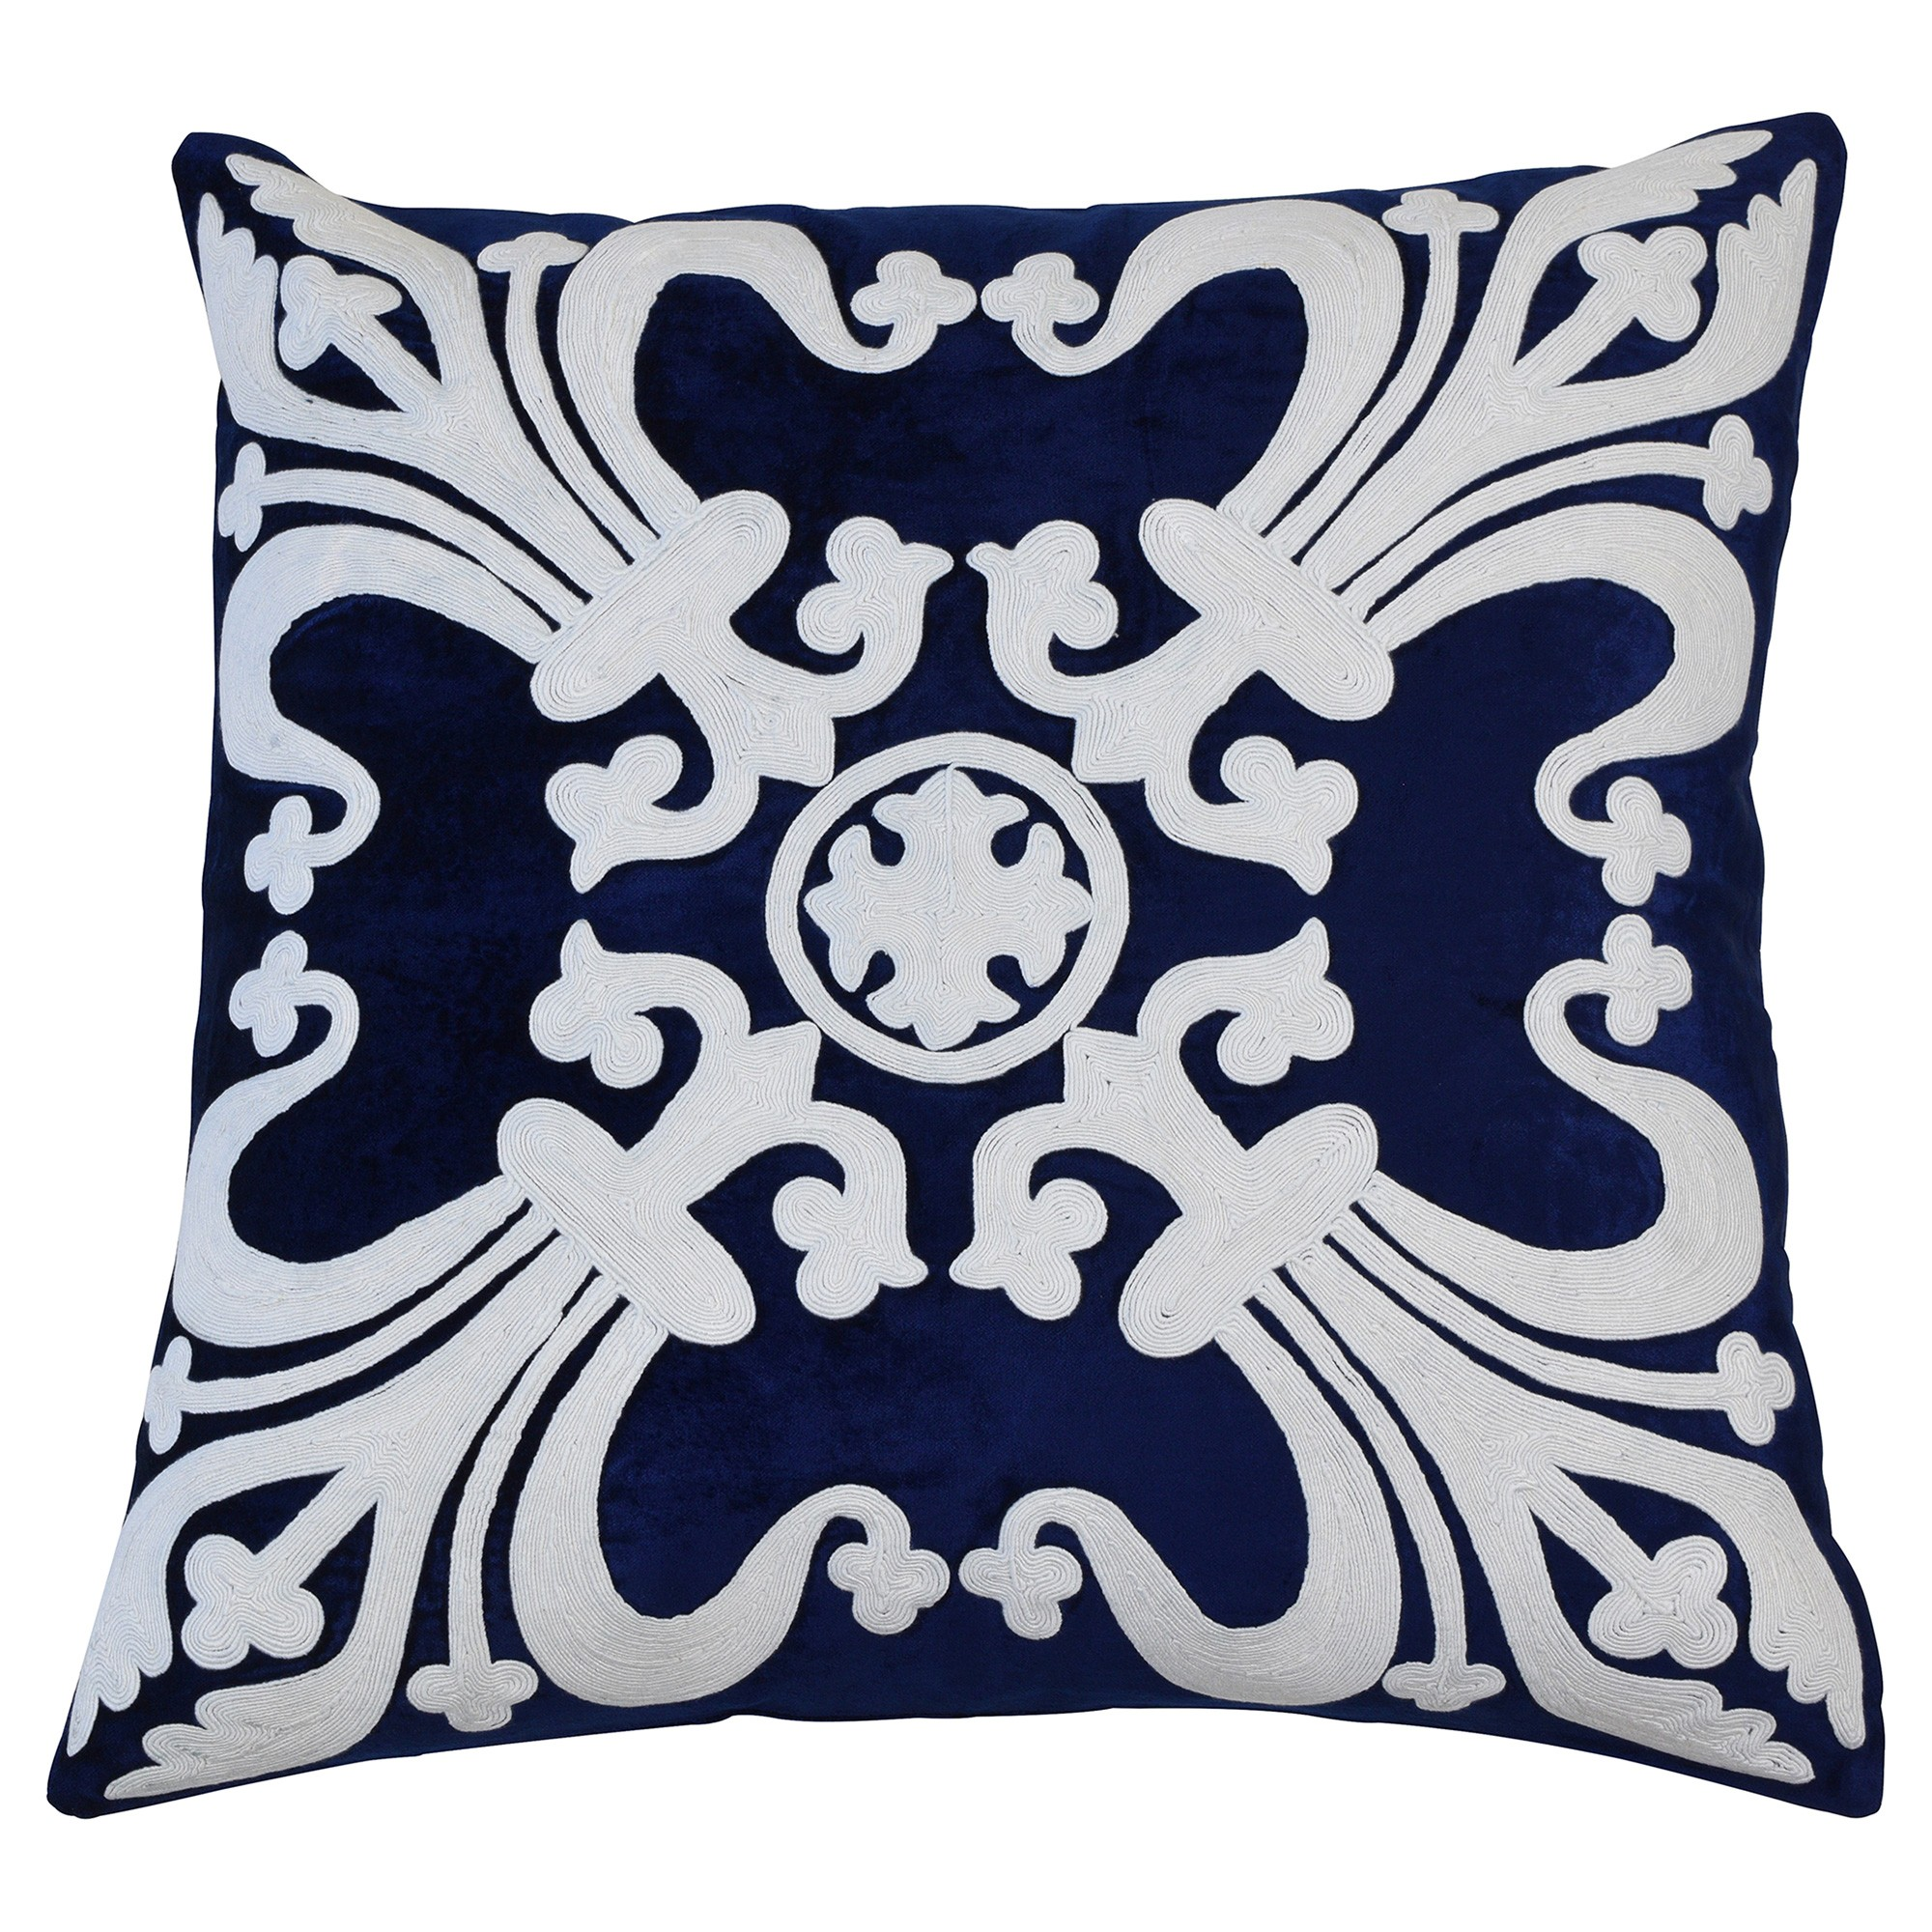 Provence Embroider Velvet Scatter Cushion Cover, Navy